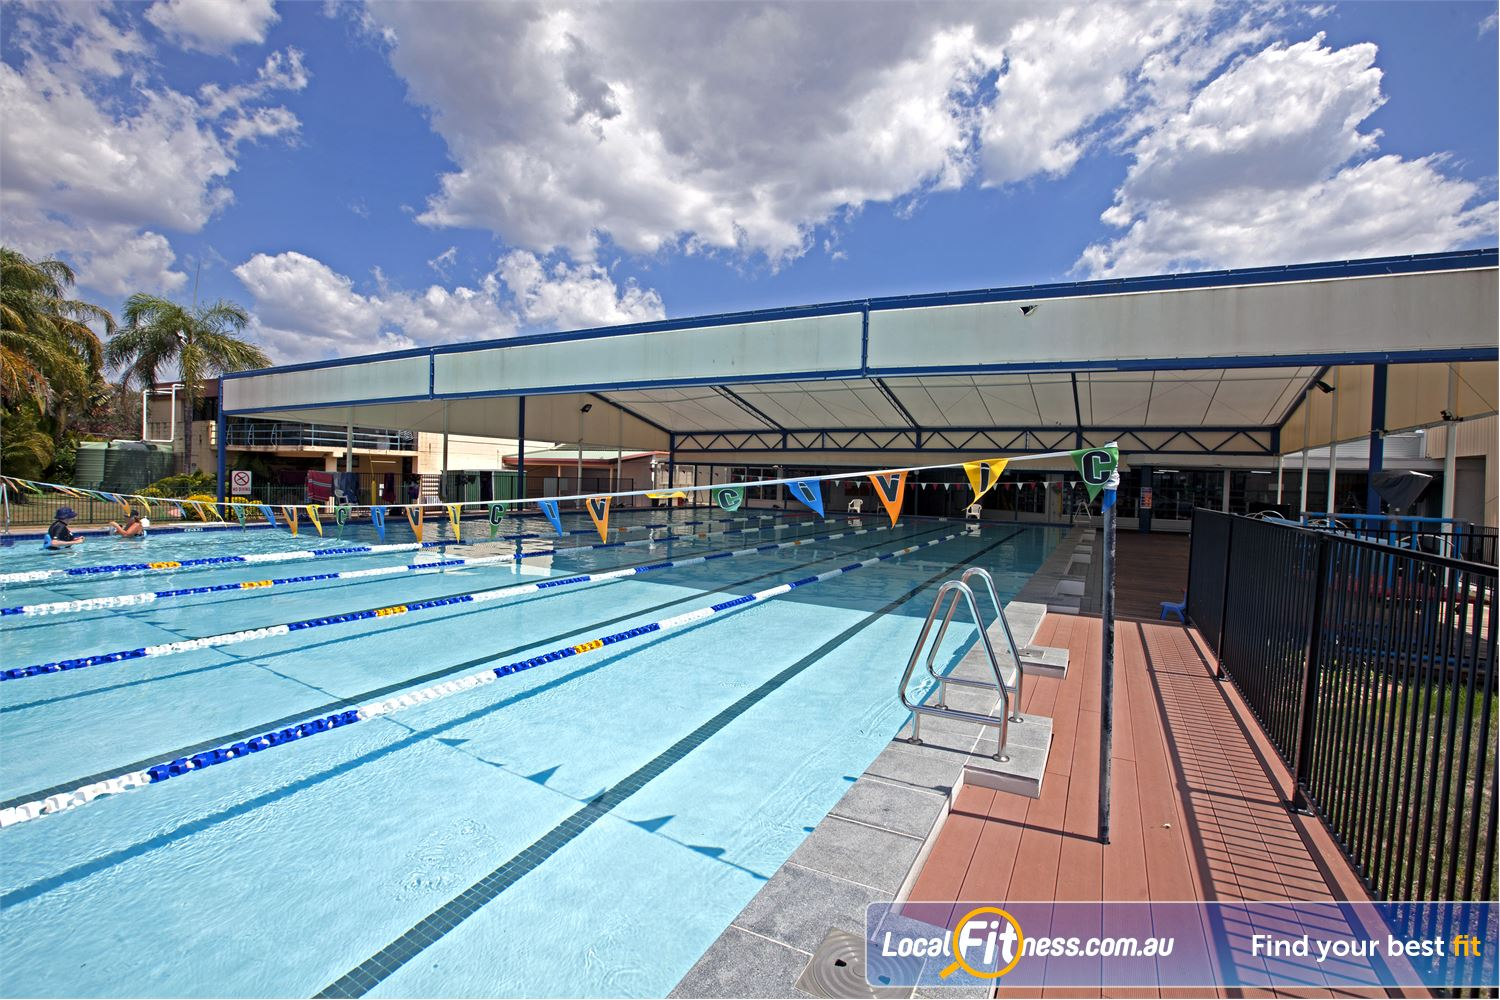 Goodlife Health Clubs Near Cleveland The indoor-outdoor Alex Hills swimming pool.